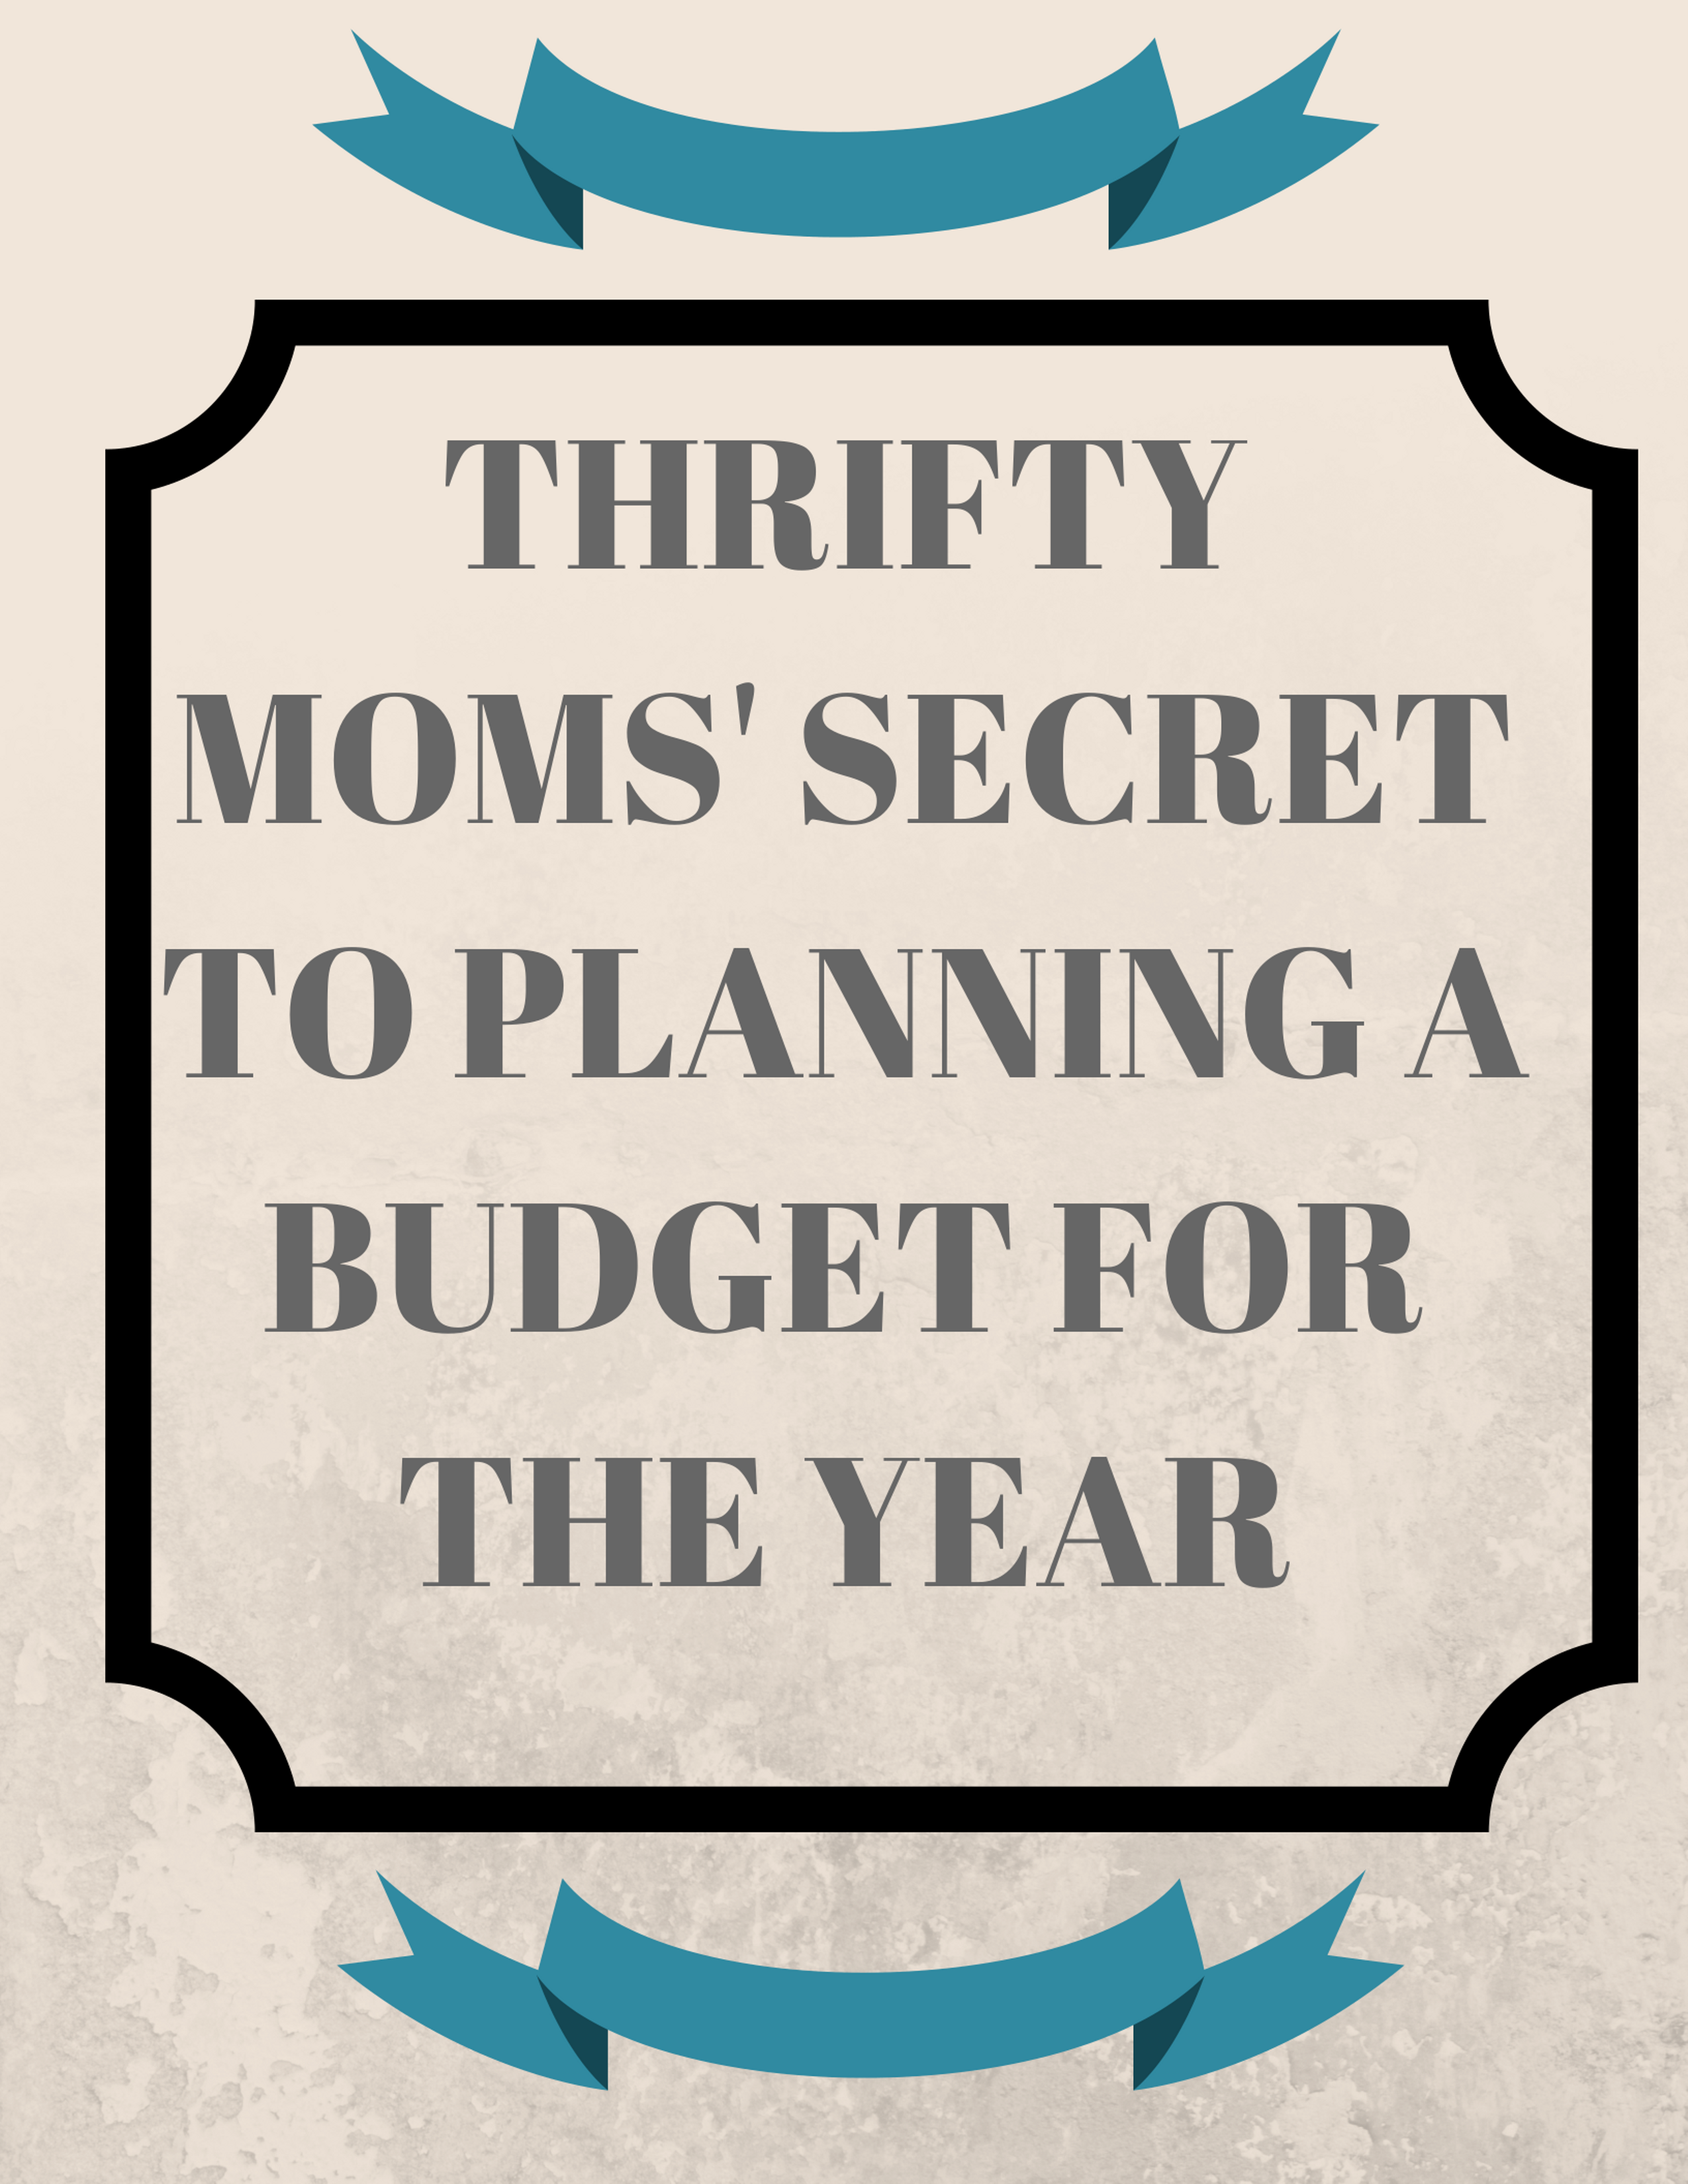 Thrifty Moms Secret To Planning A Budget for The Year